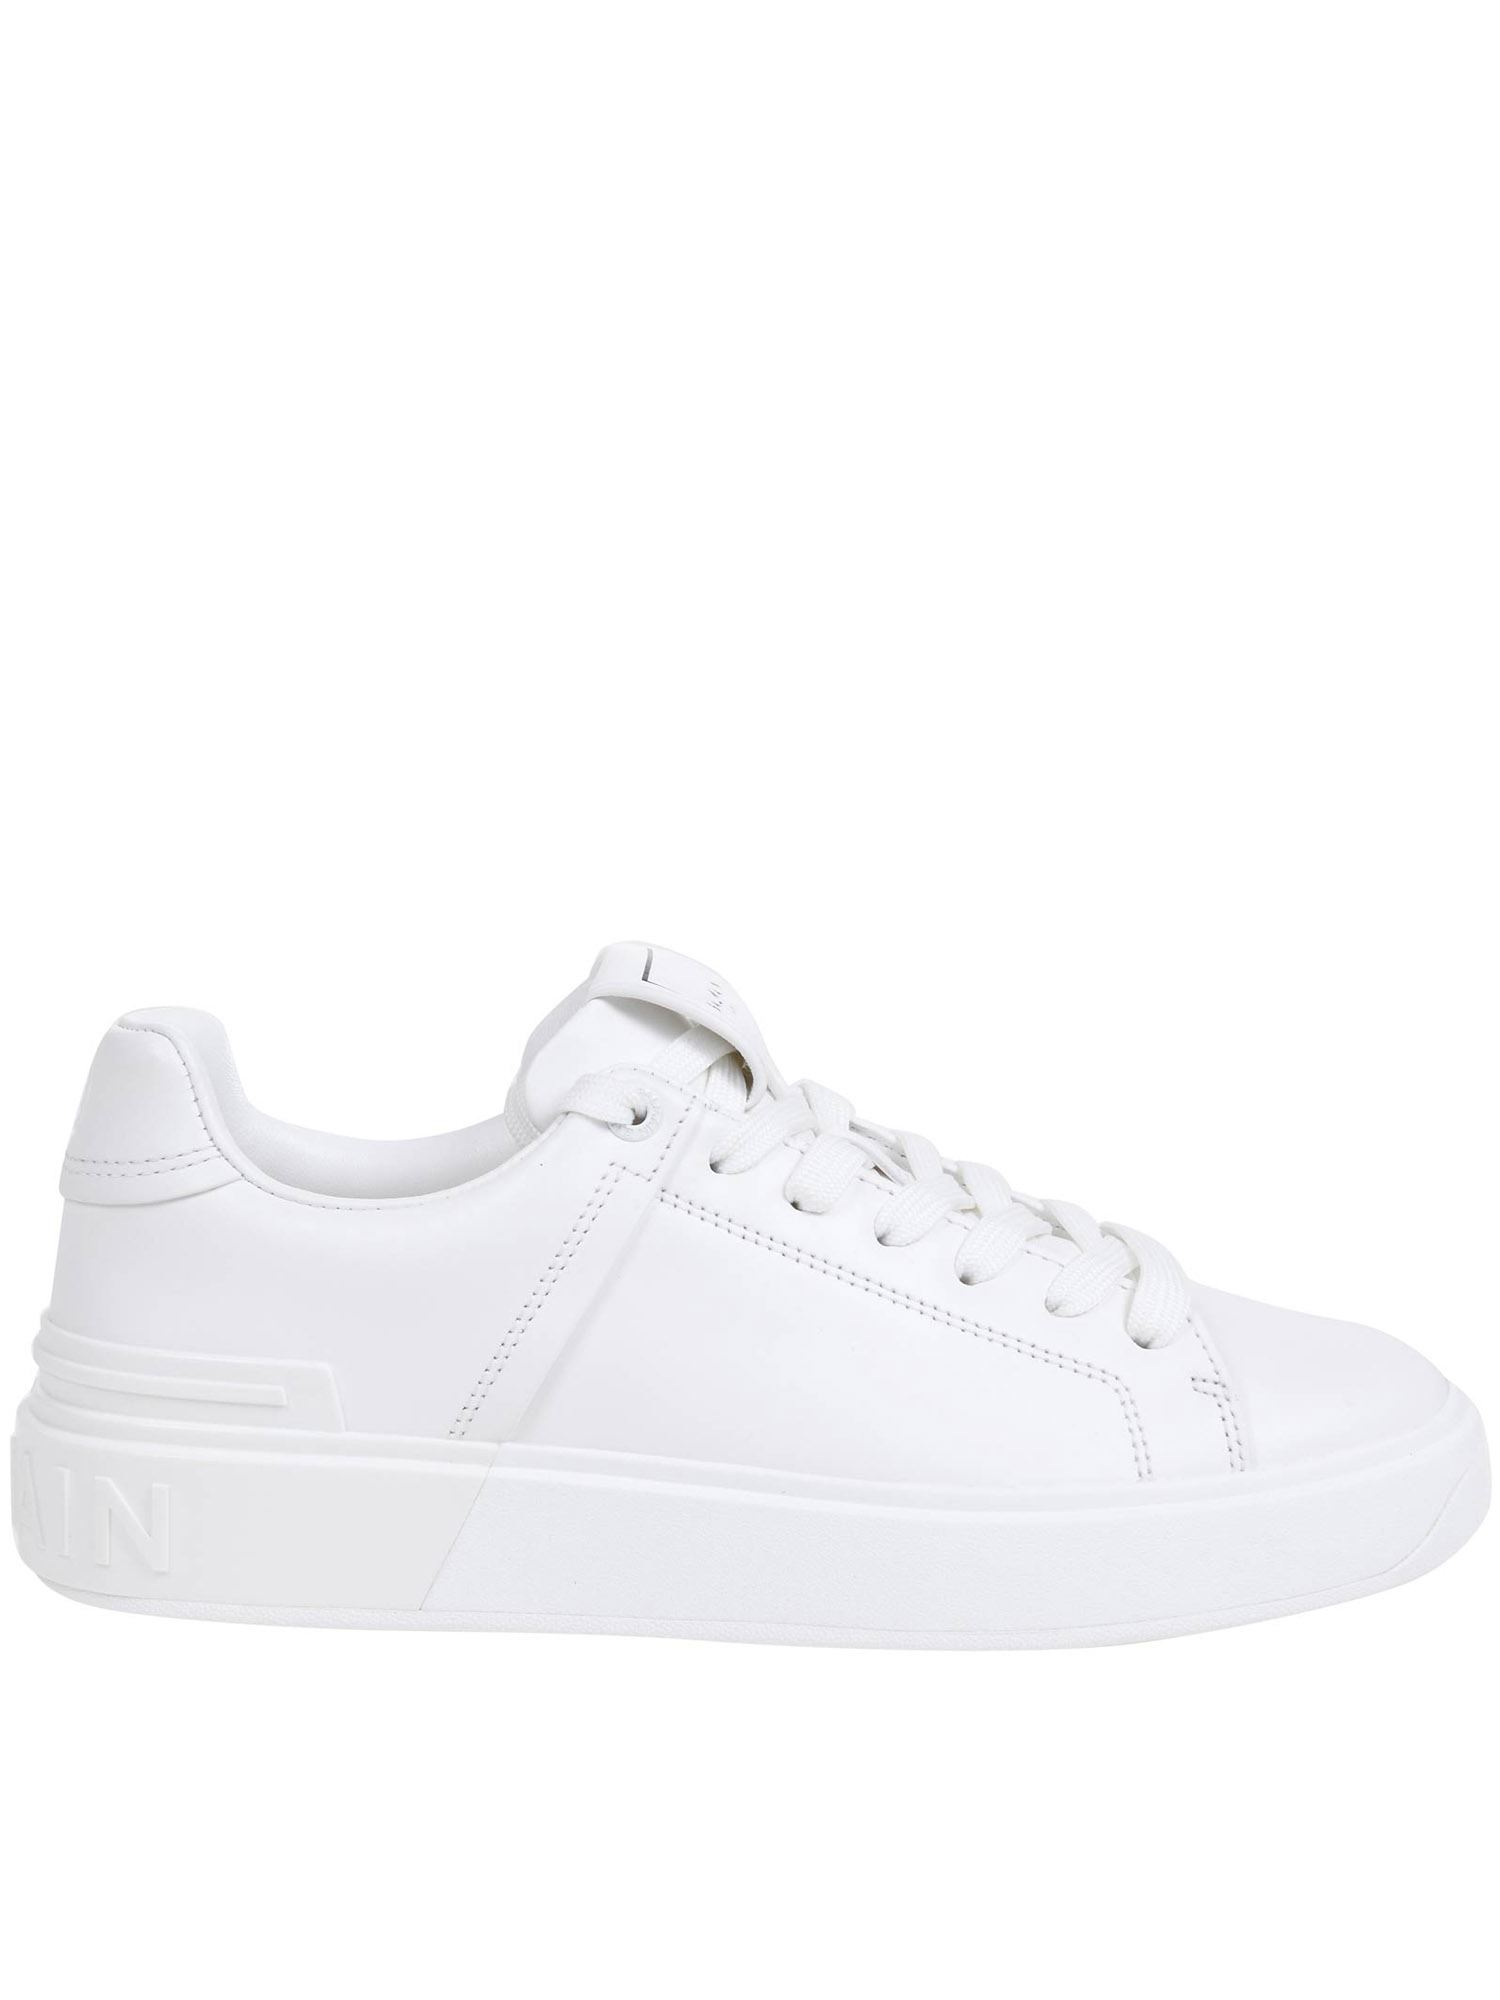 Balmain Leathers B-COURT LEATHER SNEAKERS IN WHITE